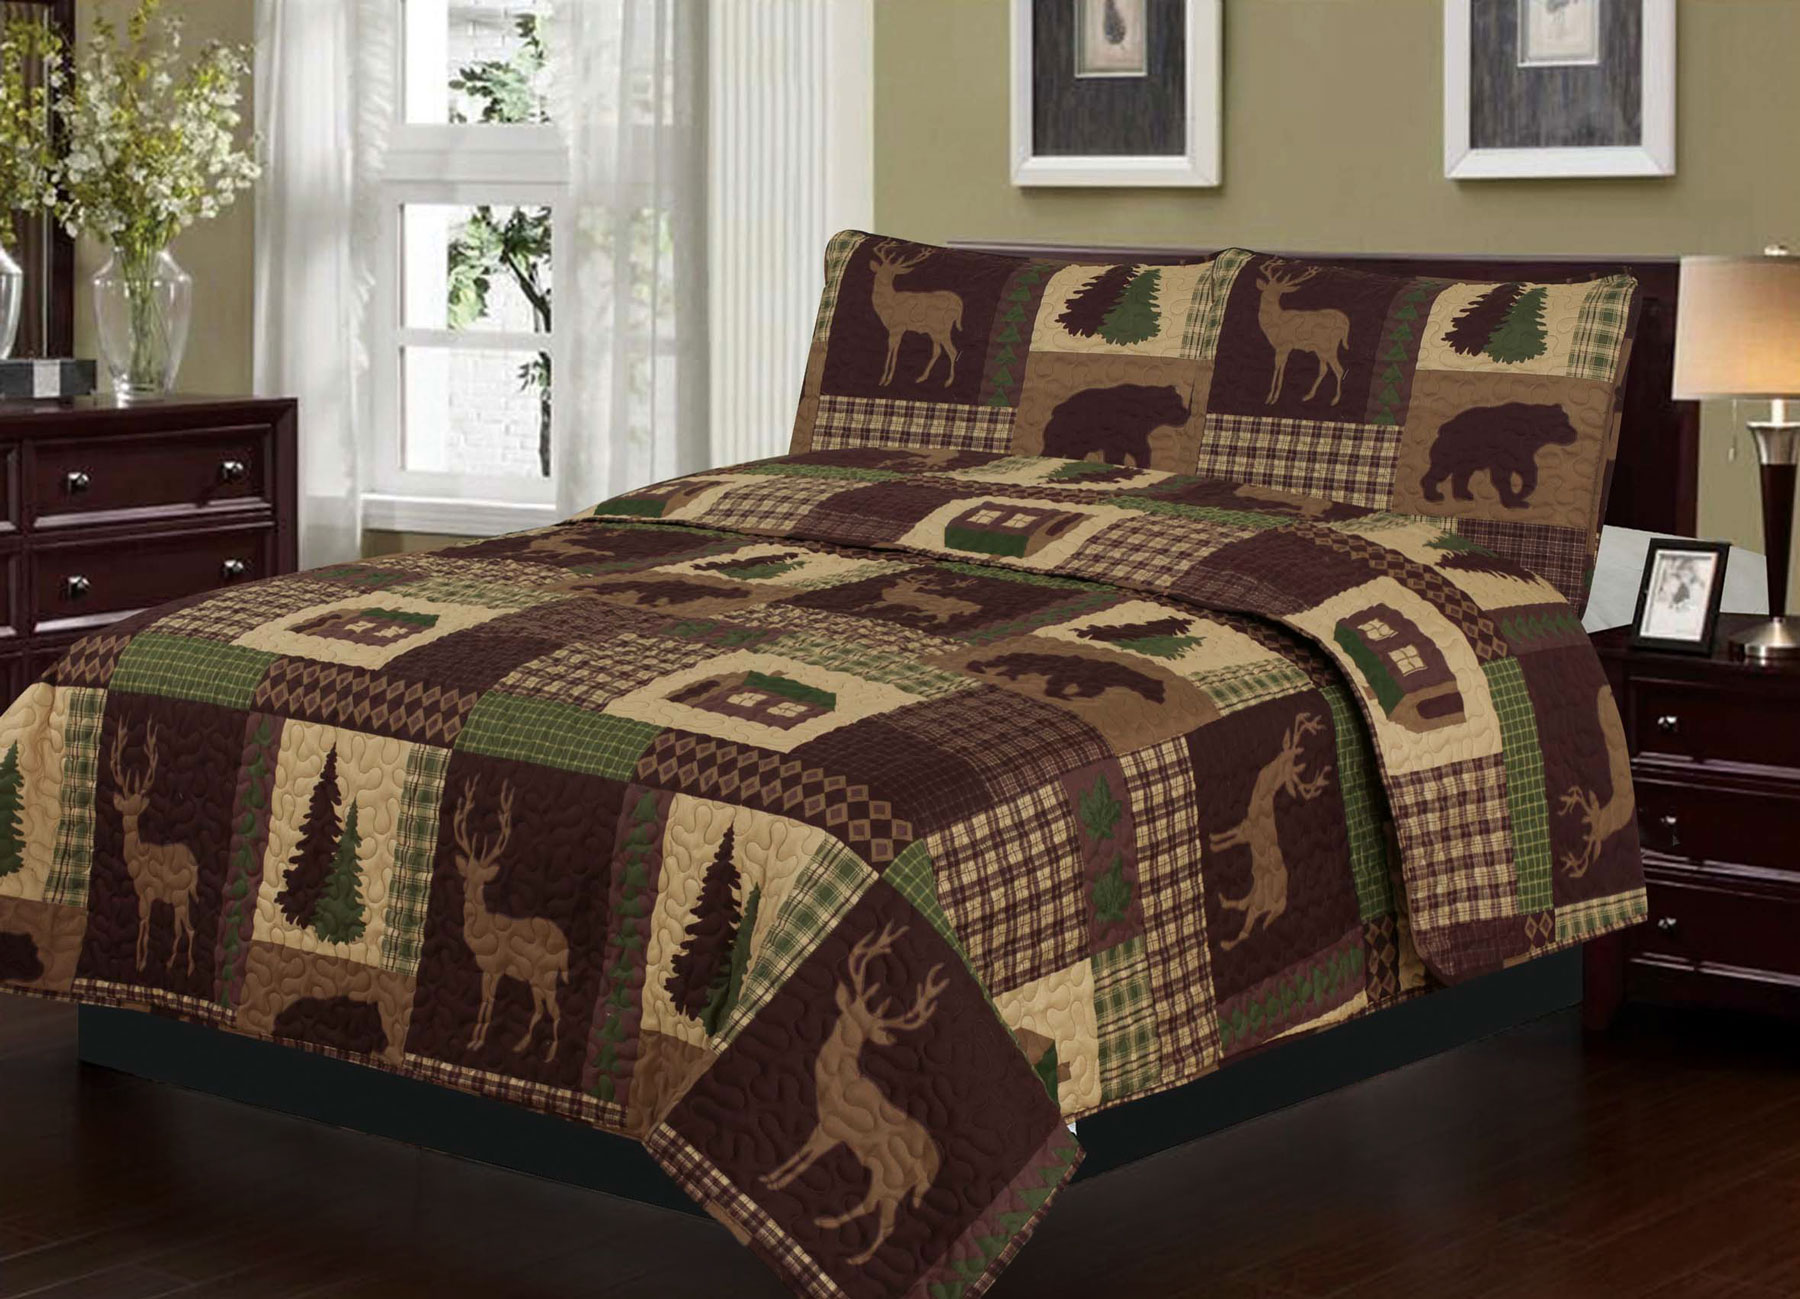 Home Bed Spreads Home Decor